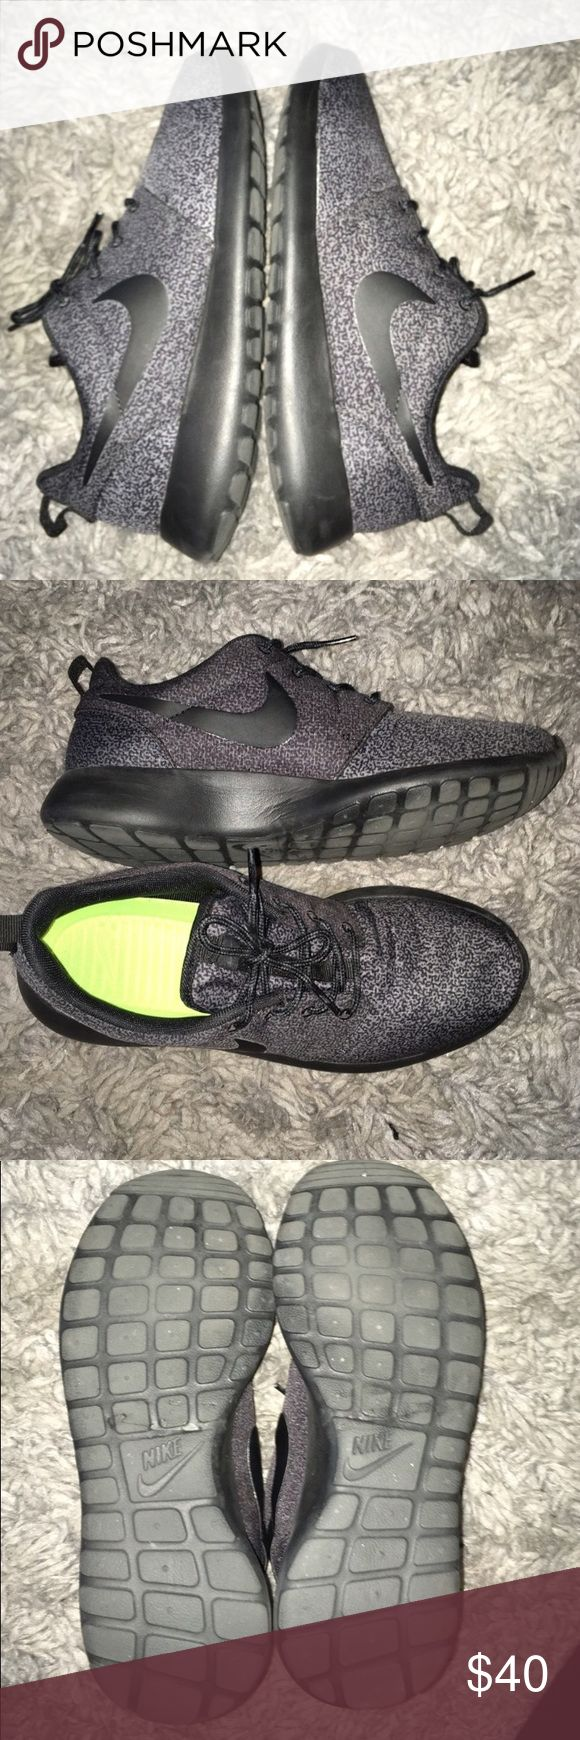 Black and gray Nike Roshe. Gently worn! These are a deep gray and black speckled Nike Roshe. I am actually re-poshing as they're half a size too big and I've never worn them. They run completely true to size. I do not have the box. Extremely comfortable. Nike Shoes Sneakers